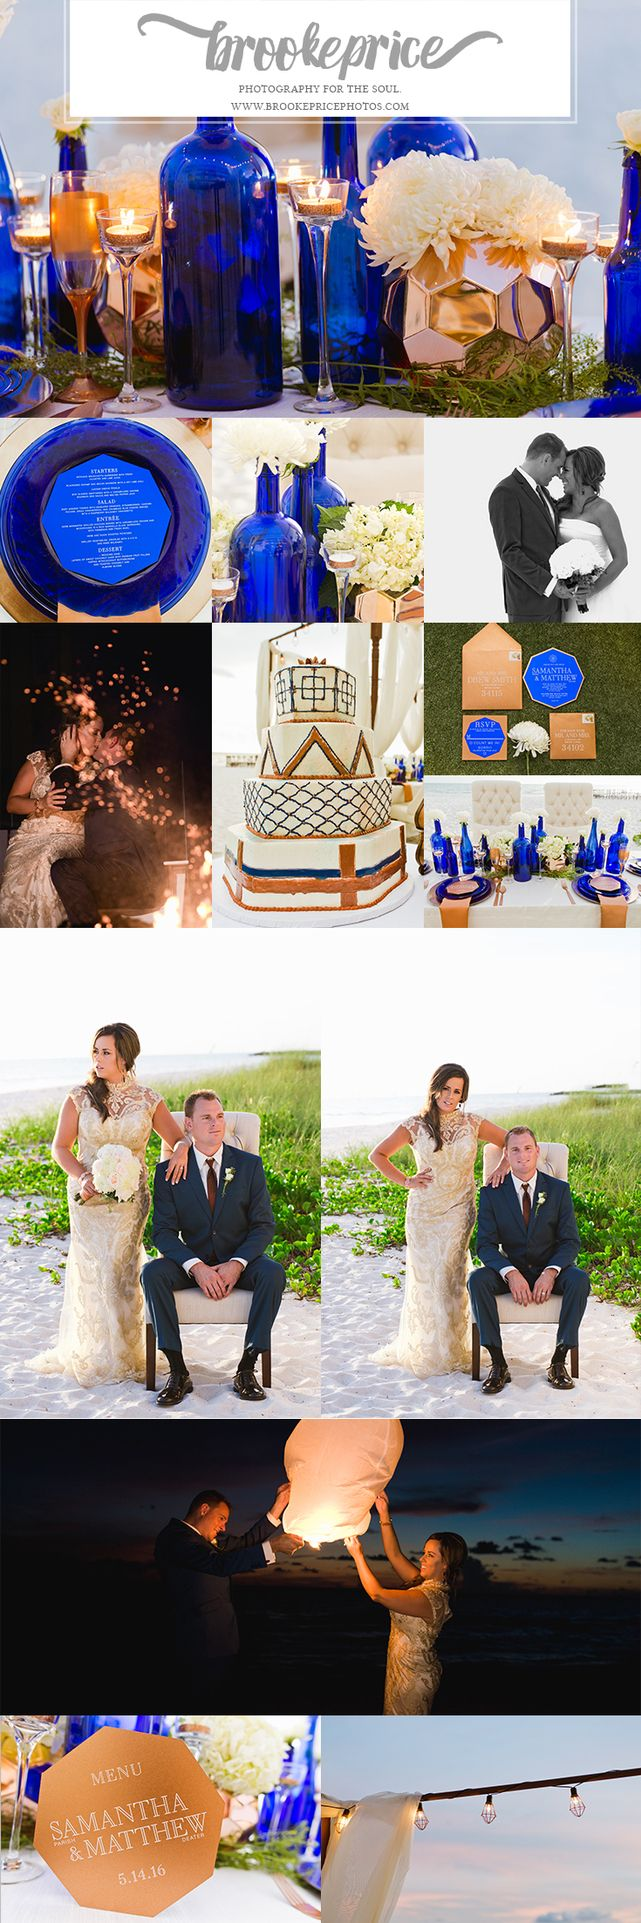 Gorgeous Copper and Cobalt themed wedding inspiration shoot!